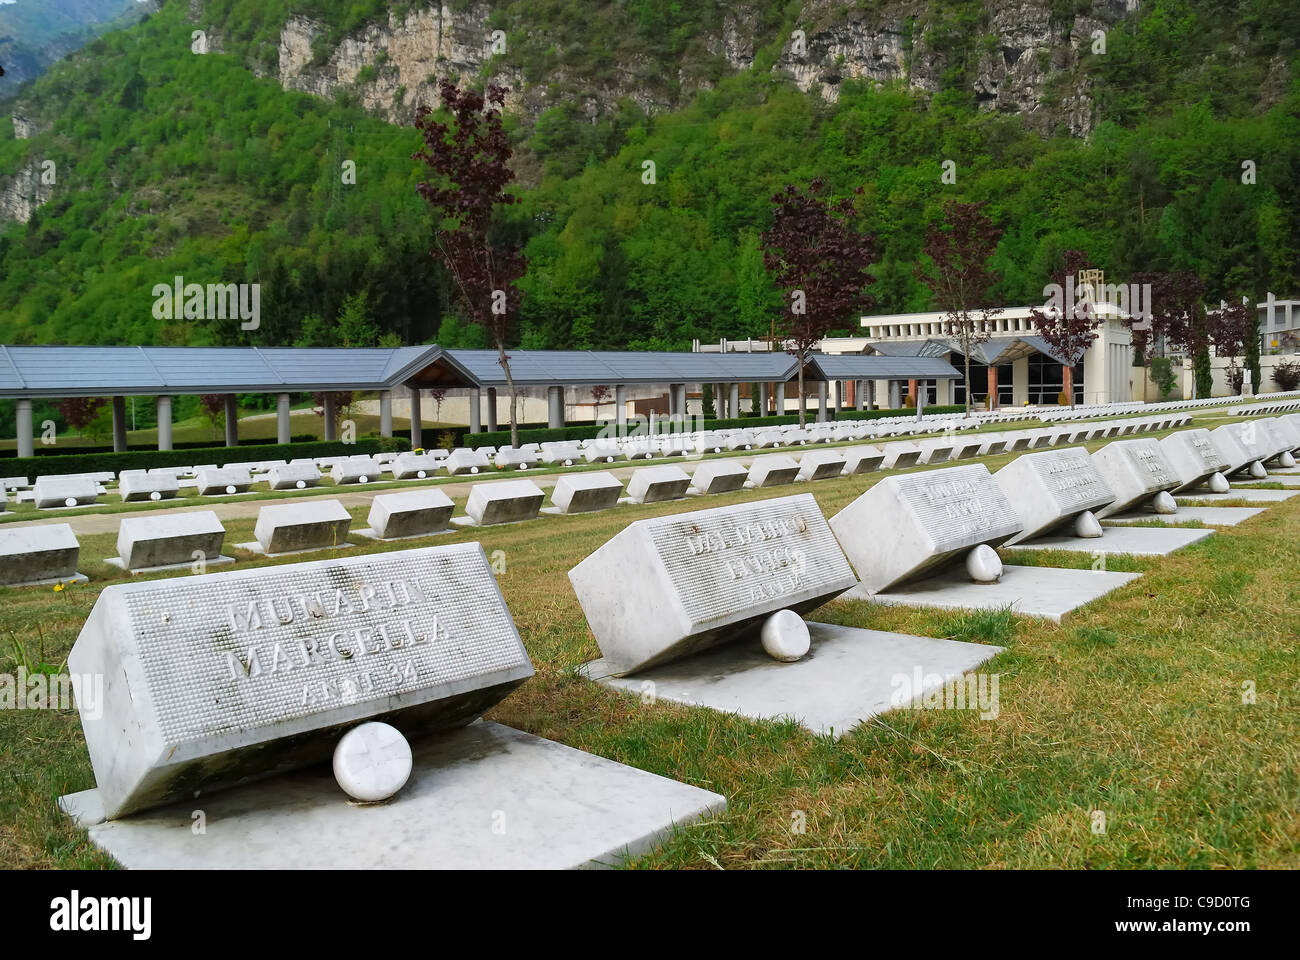 Longarone, Fortogna locality. The cemetery where are buried the victims of the Vajont dam disaster. - Stock Image